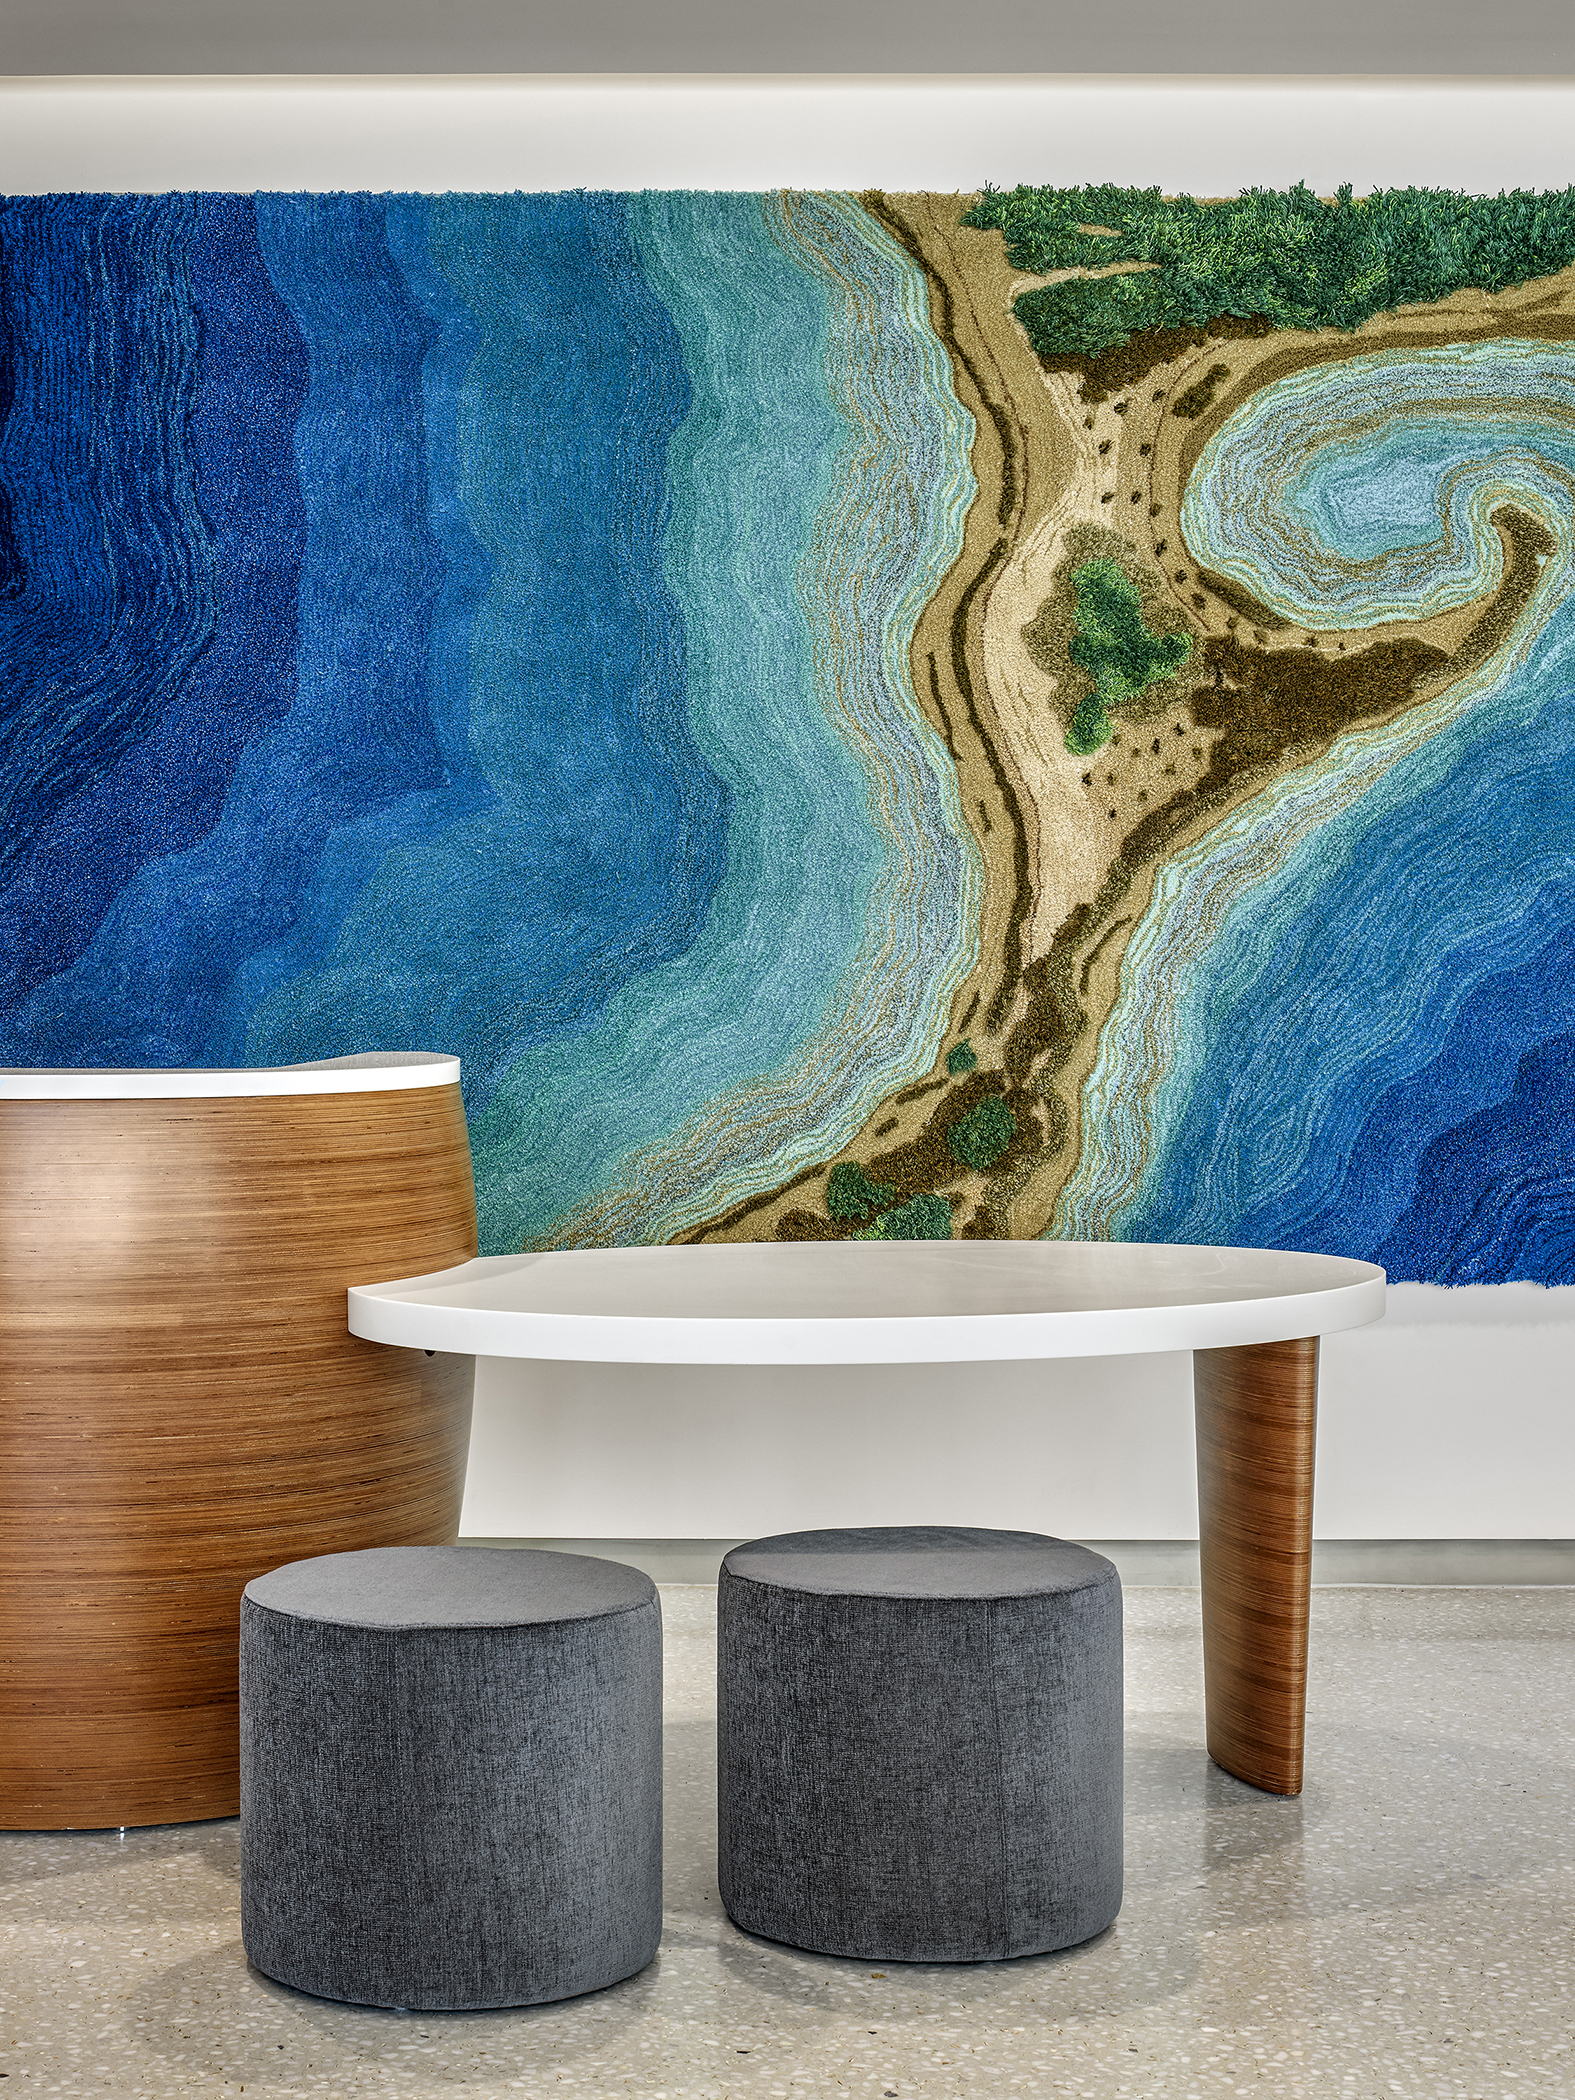 Long Island Tapestries, by Alexandra Kehayoglou for Memorial Sloan Kettering Nassau, Uniondale, NY